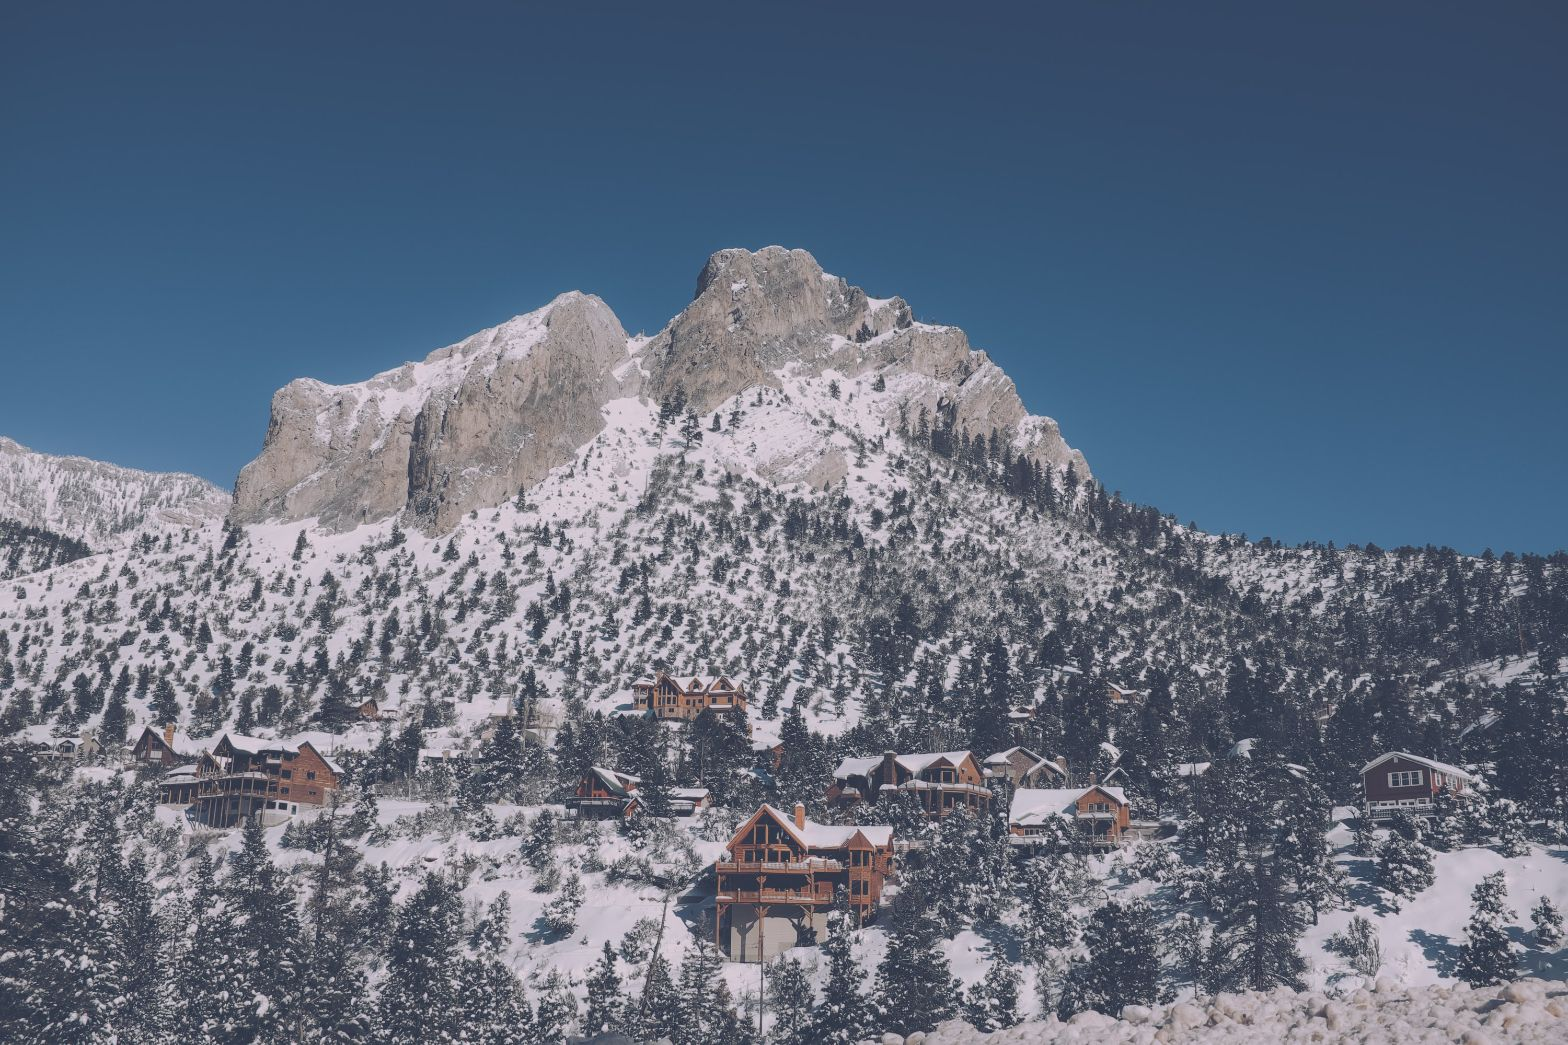 Mount Charleston lodges and snow in the winter